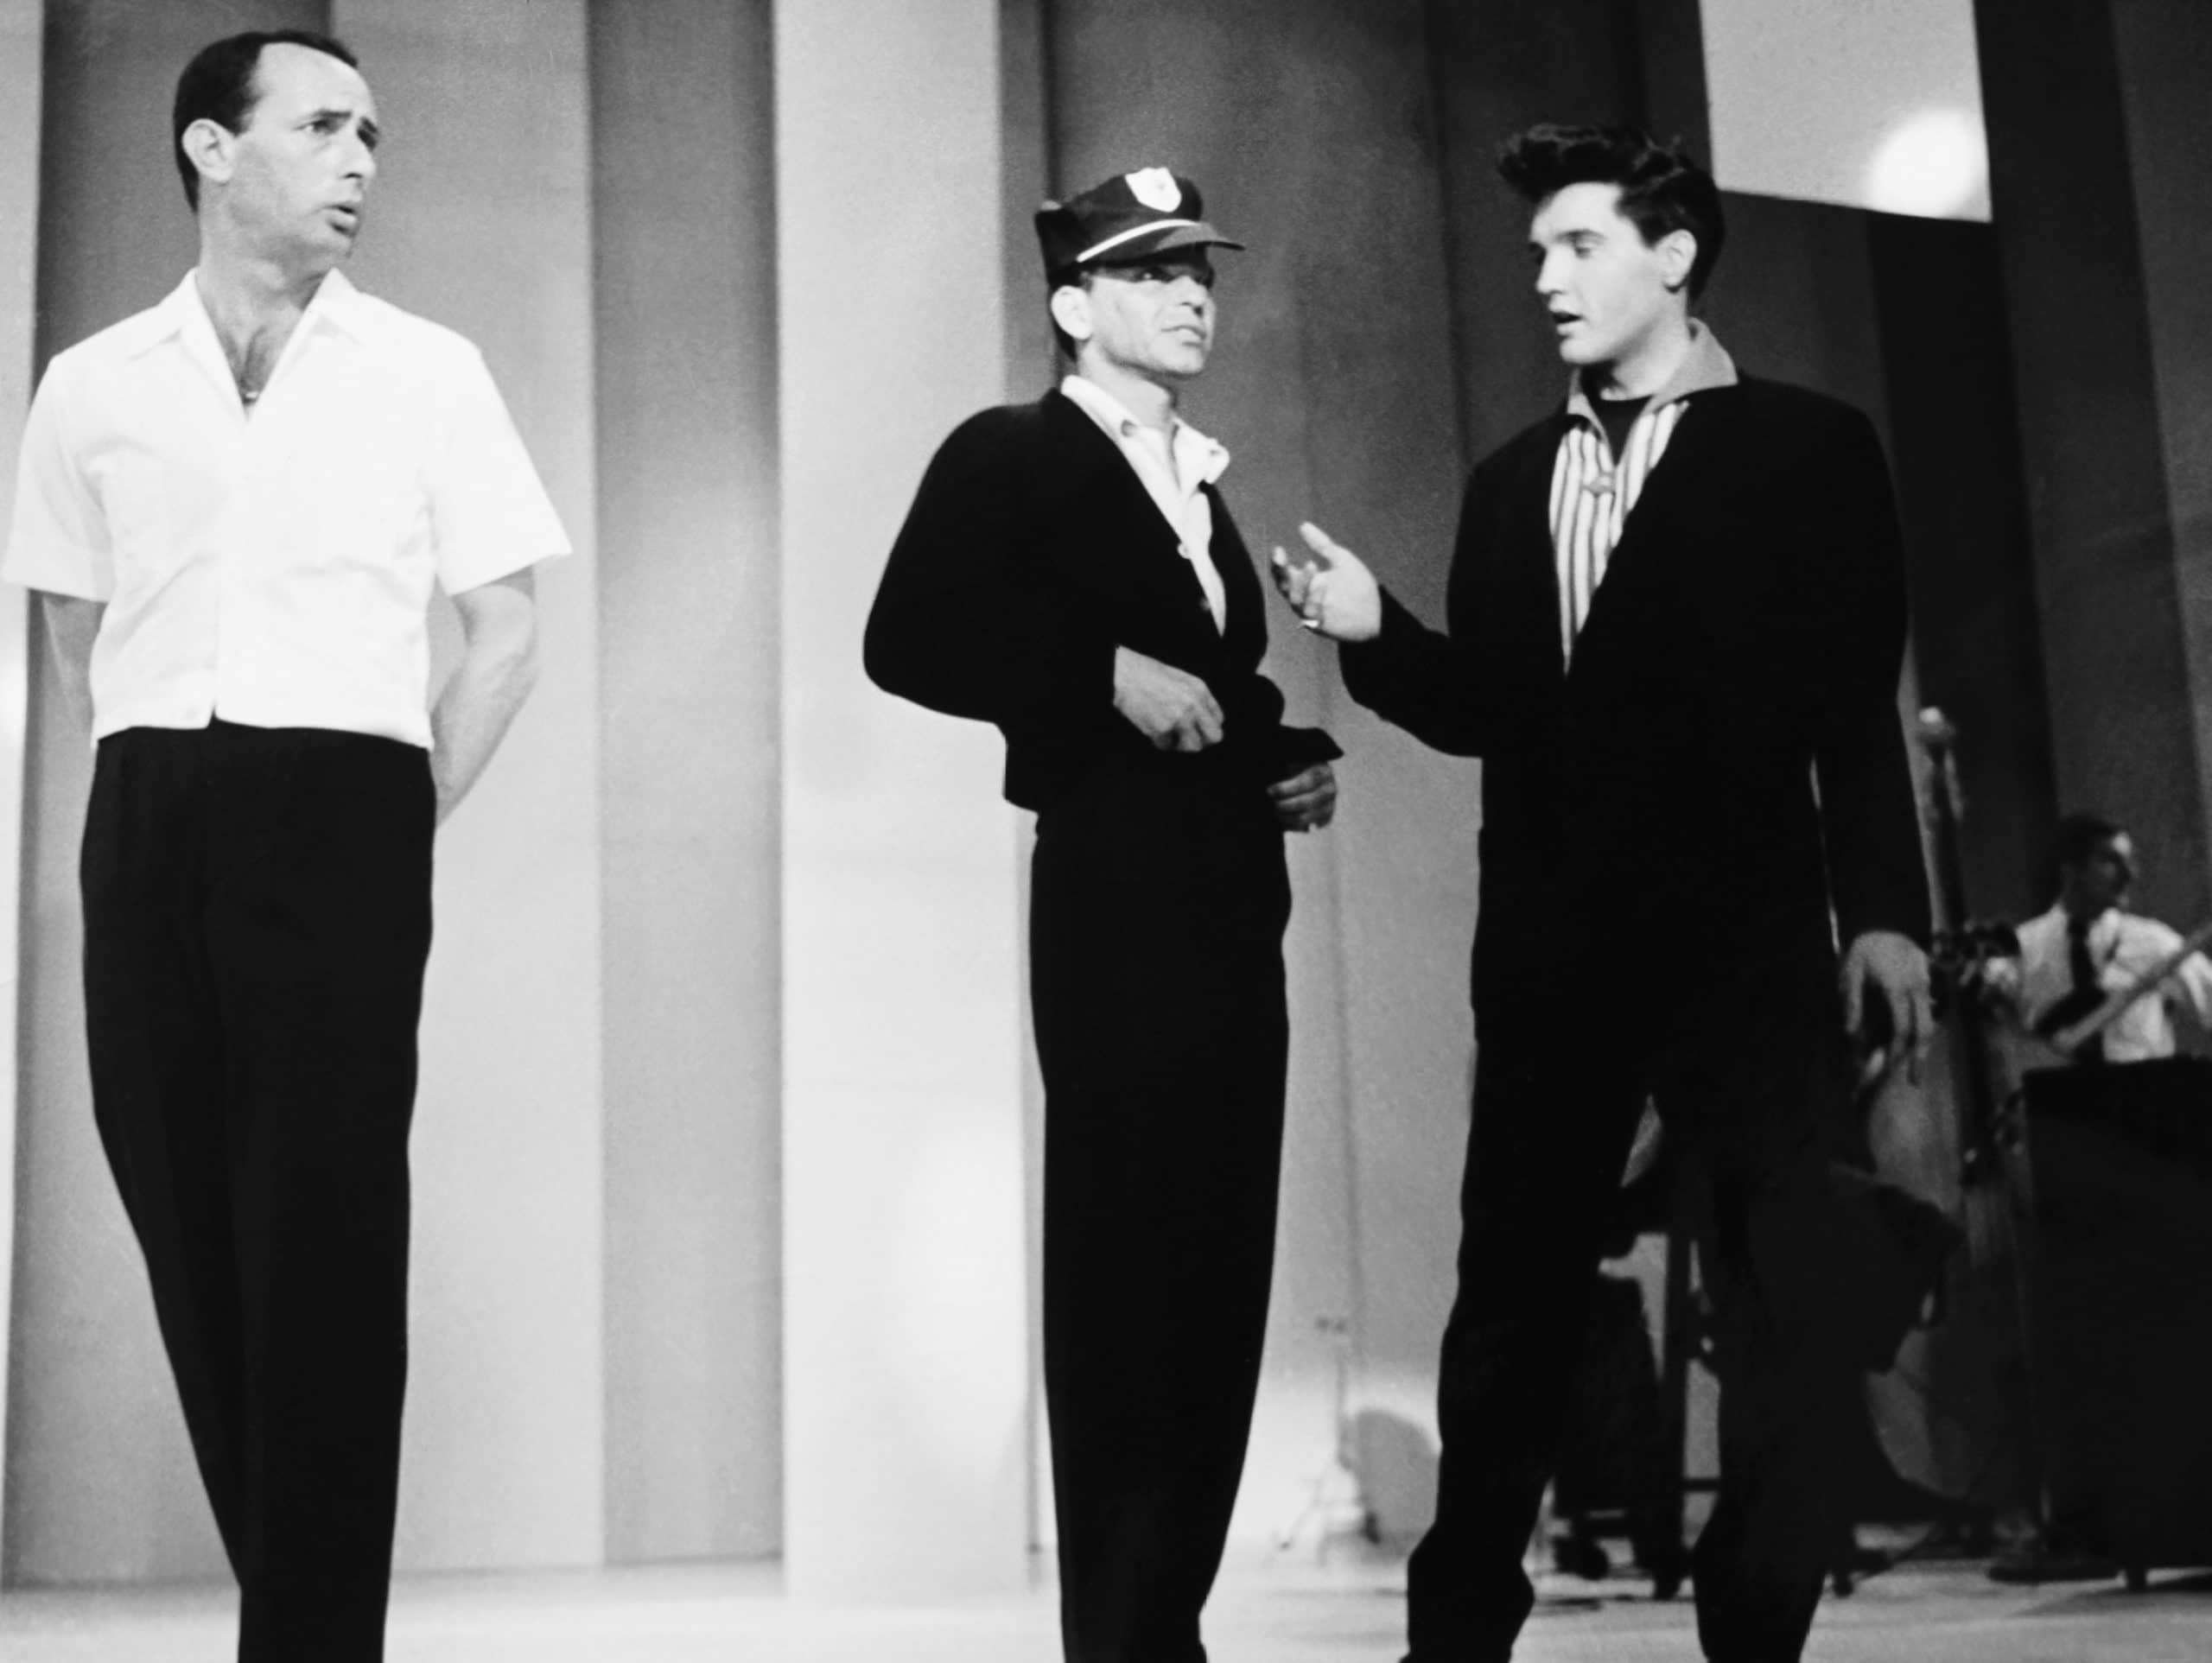 THE FRANK SINATRA TIMEX SHOW, from left: Joey Bishop, Frank Sinatra, Elvis Presley in rehearsal,